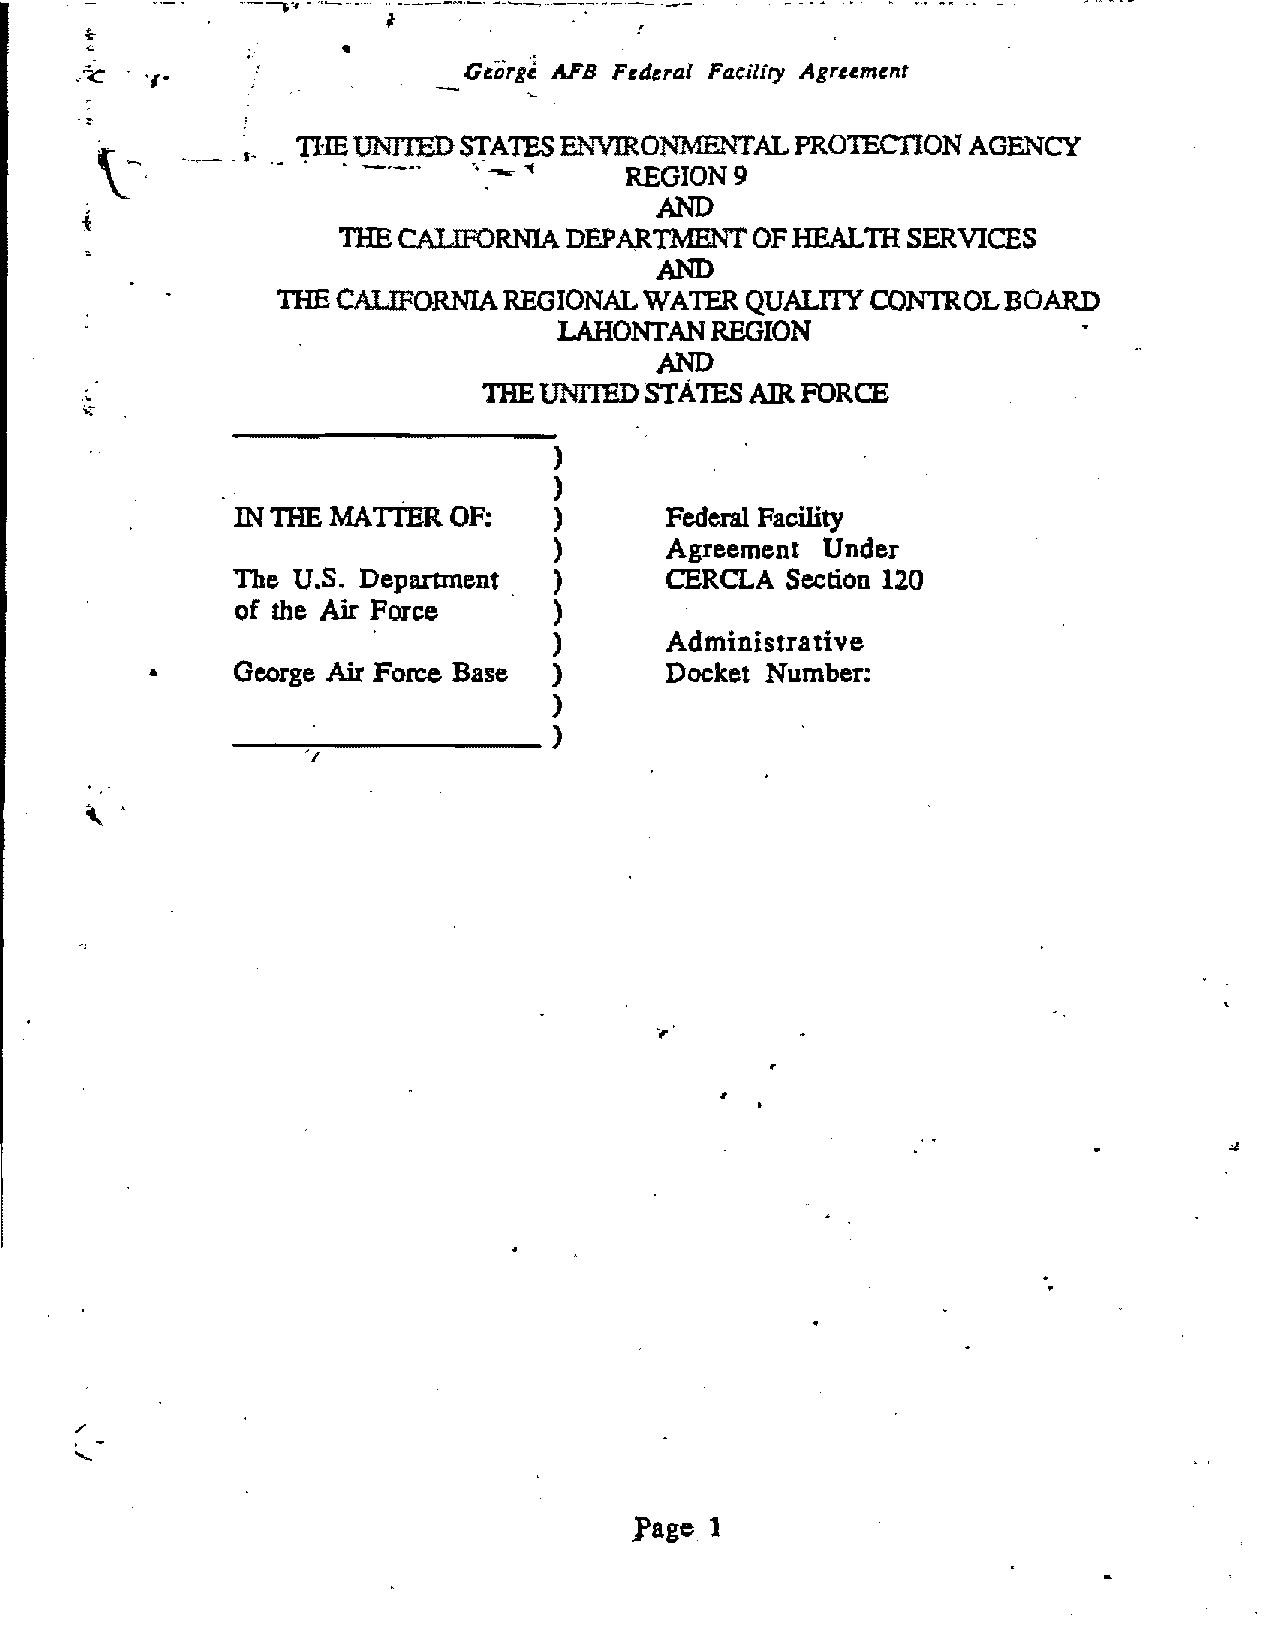 1990 10 21 George Air Force Base Federal Facility Agreement